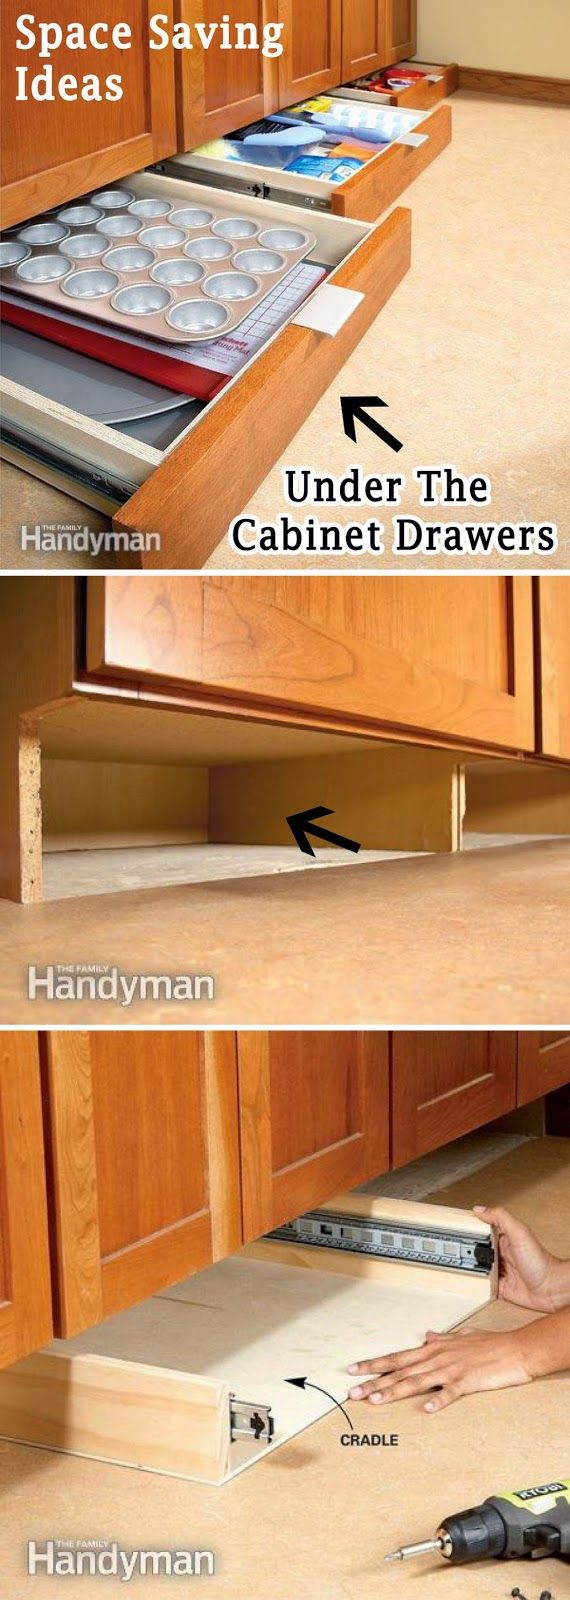 11 Creative And Clever E Saving Ideas Make More In The Kitchen Without Remodeling Or Adding Cabinets